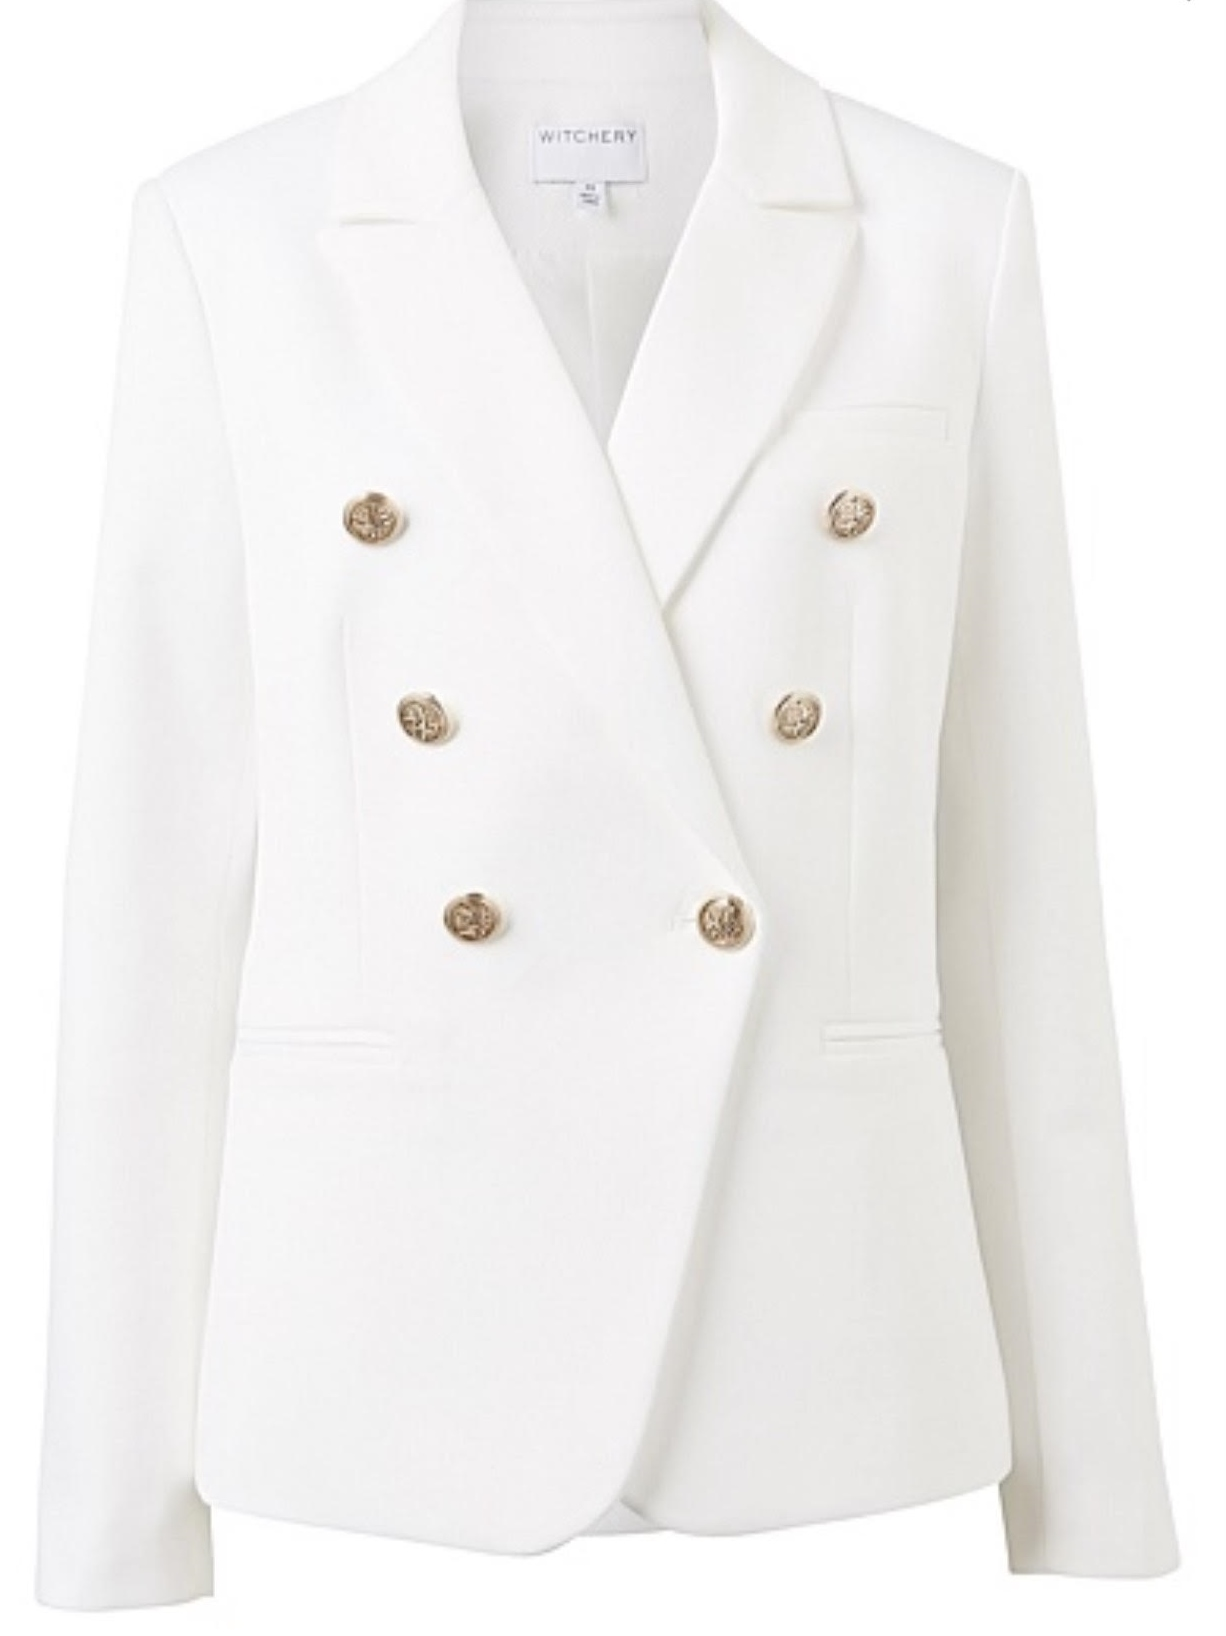 LESS Blazer - Witchery Double Breasted Blazer in MILK WHITE$279.952/778-782 Military Rd, Mosman(02) 9968 1647